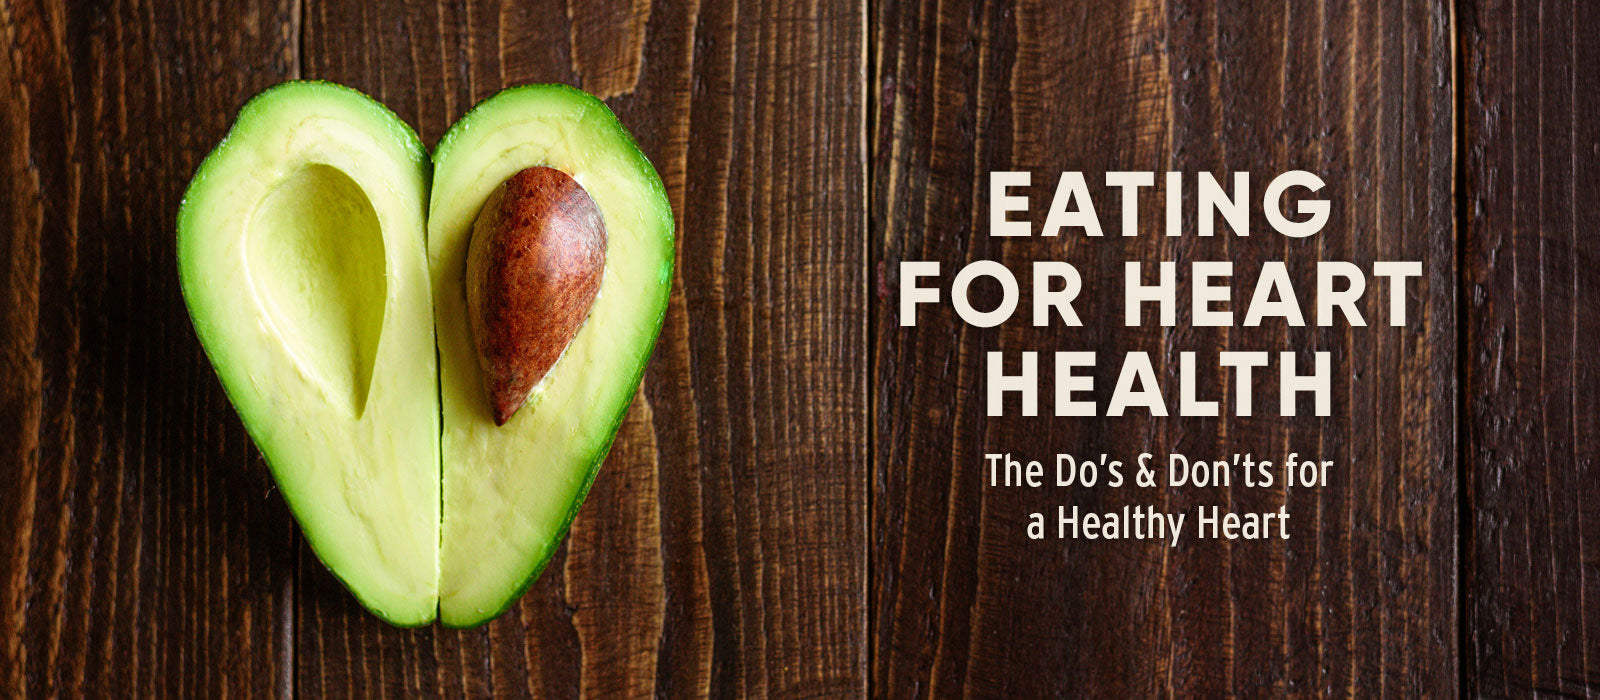 EATING FOR HEART HEALTH, the do's and don'ts for a healthy heart